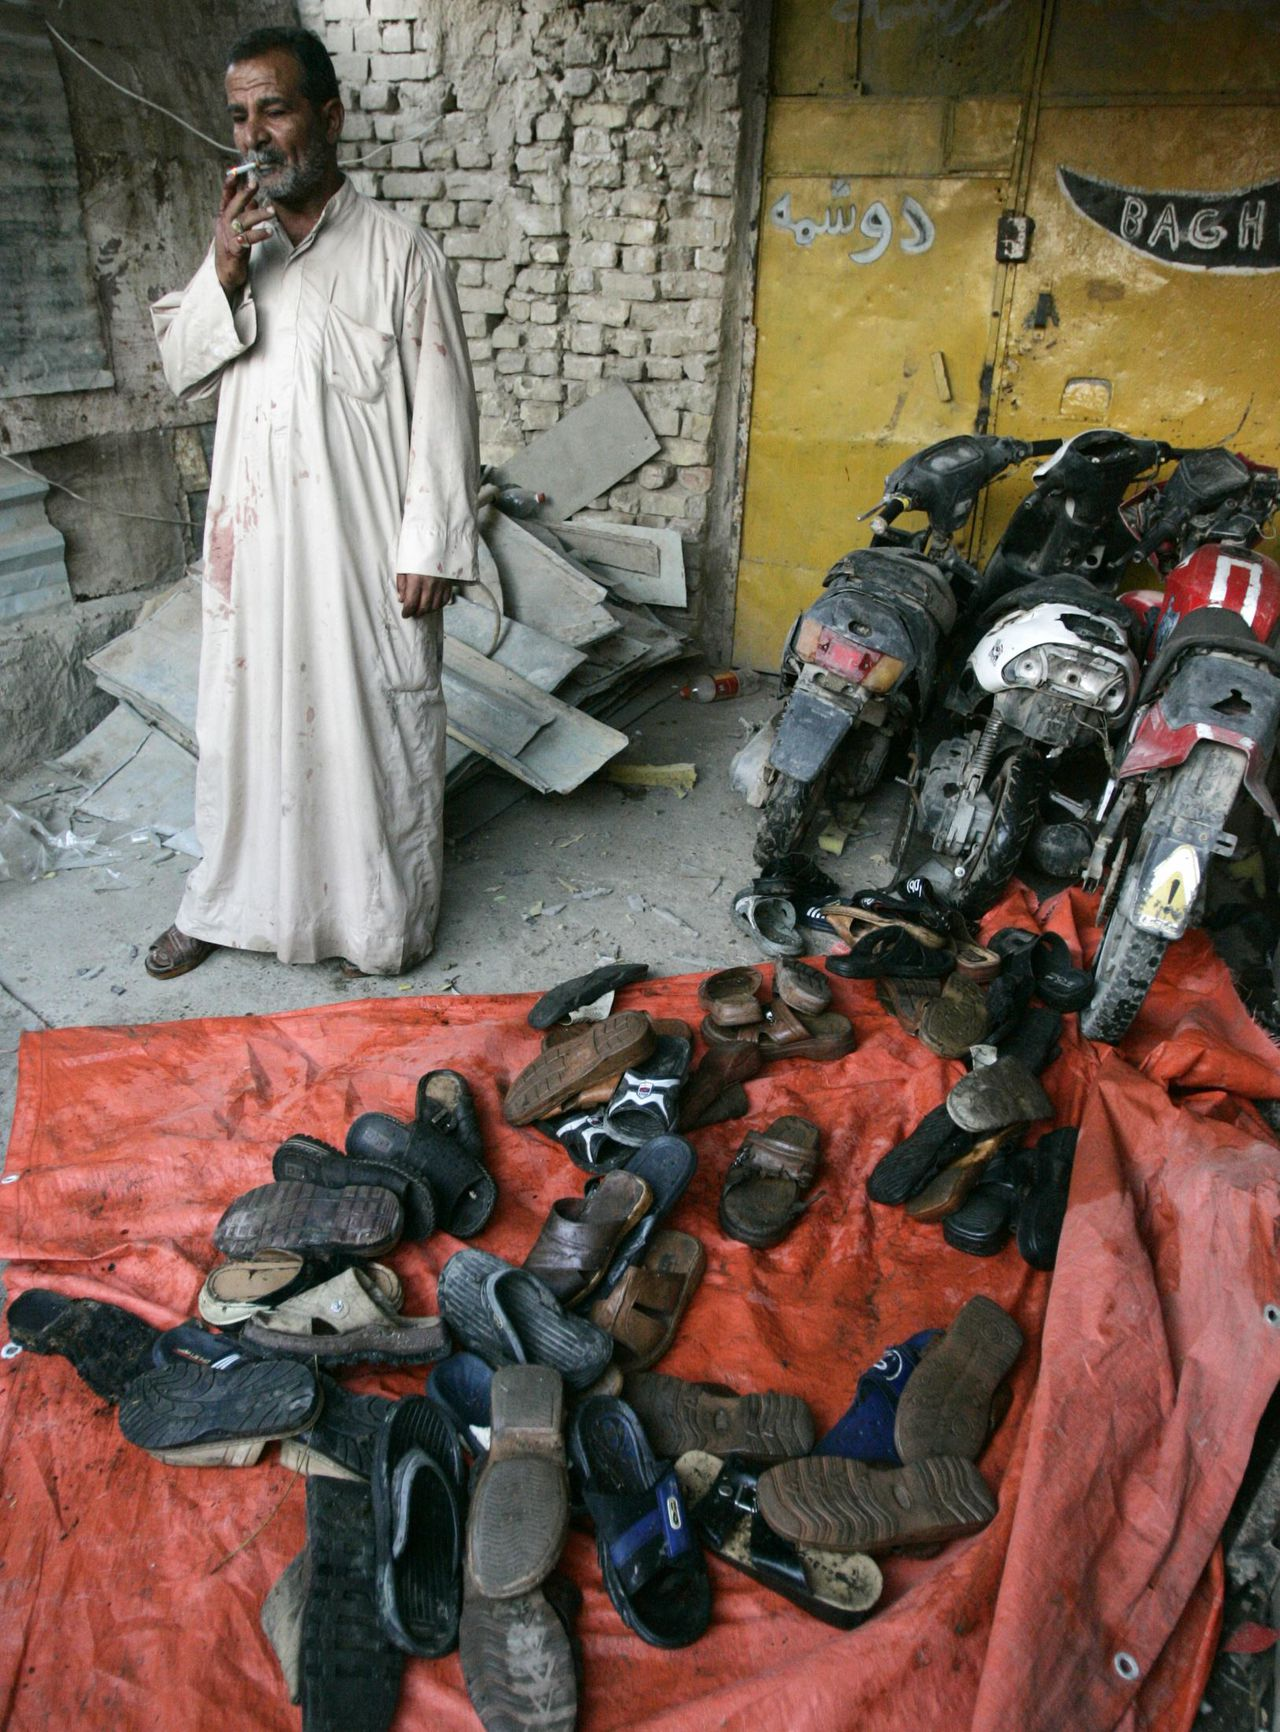 Beschadigde schoenen en brommers na aanslag in Bagdad. Foto Reuters A man stands next to footwear and damaged motorcycles after a bomb attack in Baghdad's Sadr city, November 2, 2006. A motorcycle bomb killed seven people and wounded 45 when it exploded in a crowded market, an interior ministry source said. REUTERS/Thaier al-Sudani (IRAQ)